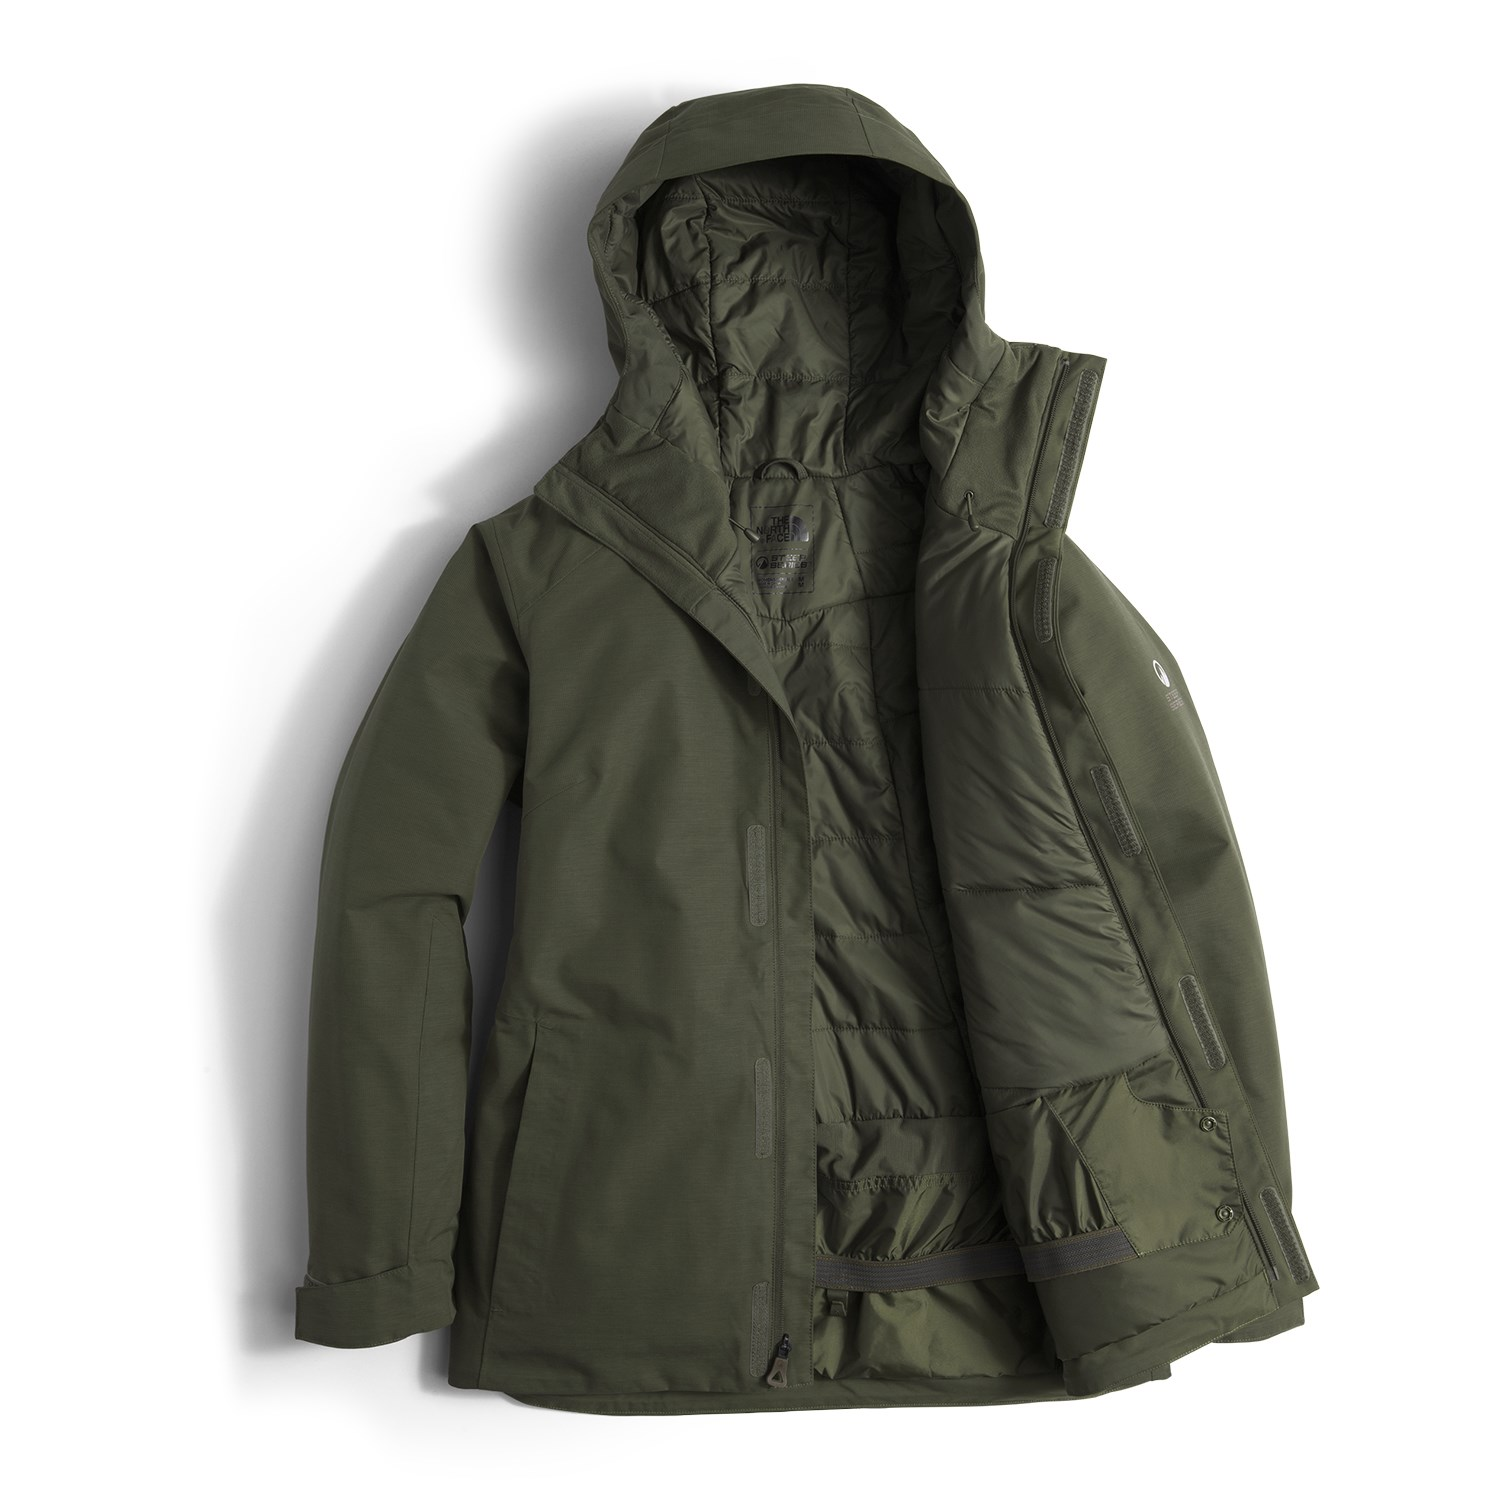 090eb43efdee The North Face NFZ Insulated Jacket - Women s